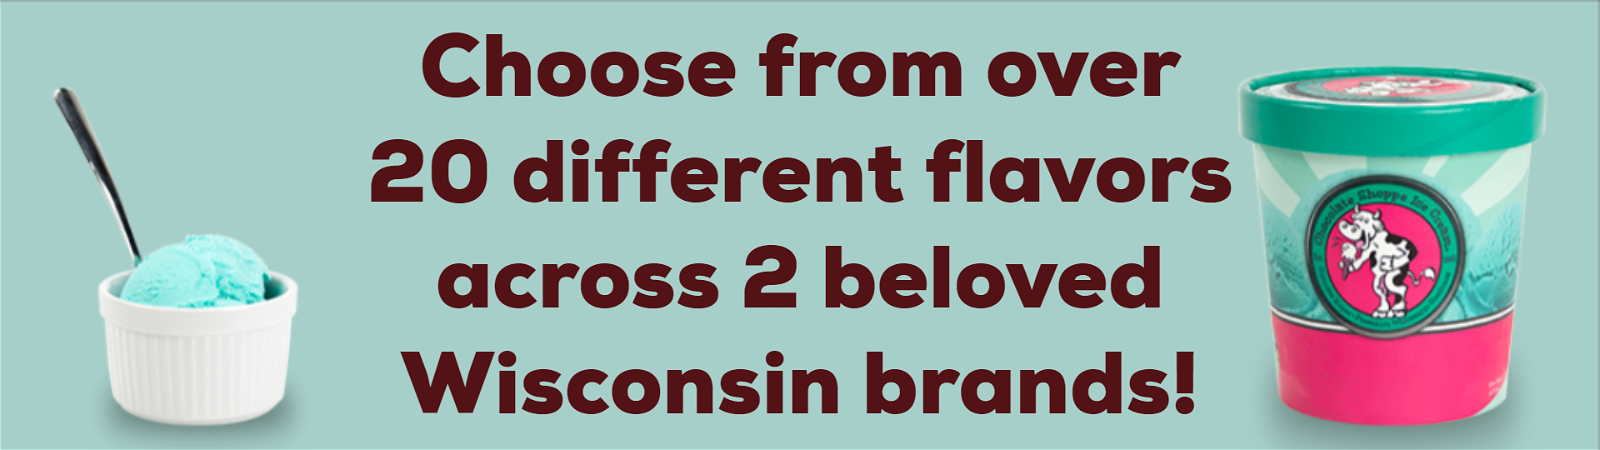 Choose from over 20 different flavors across 2 beloved Wisconsin brands!